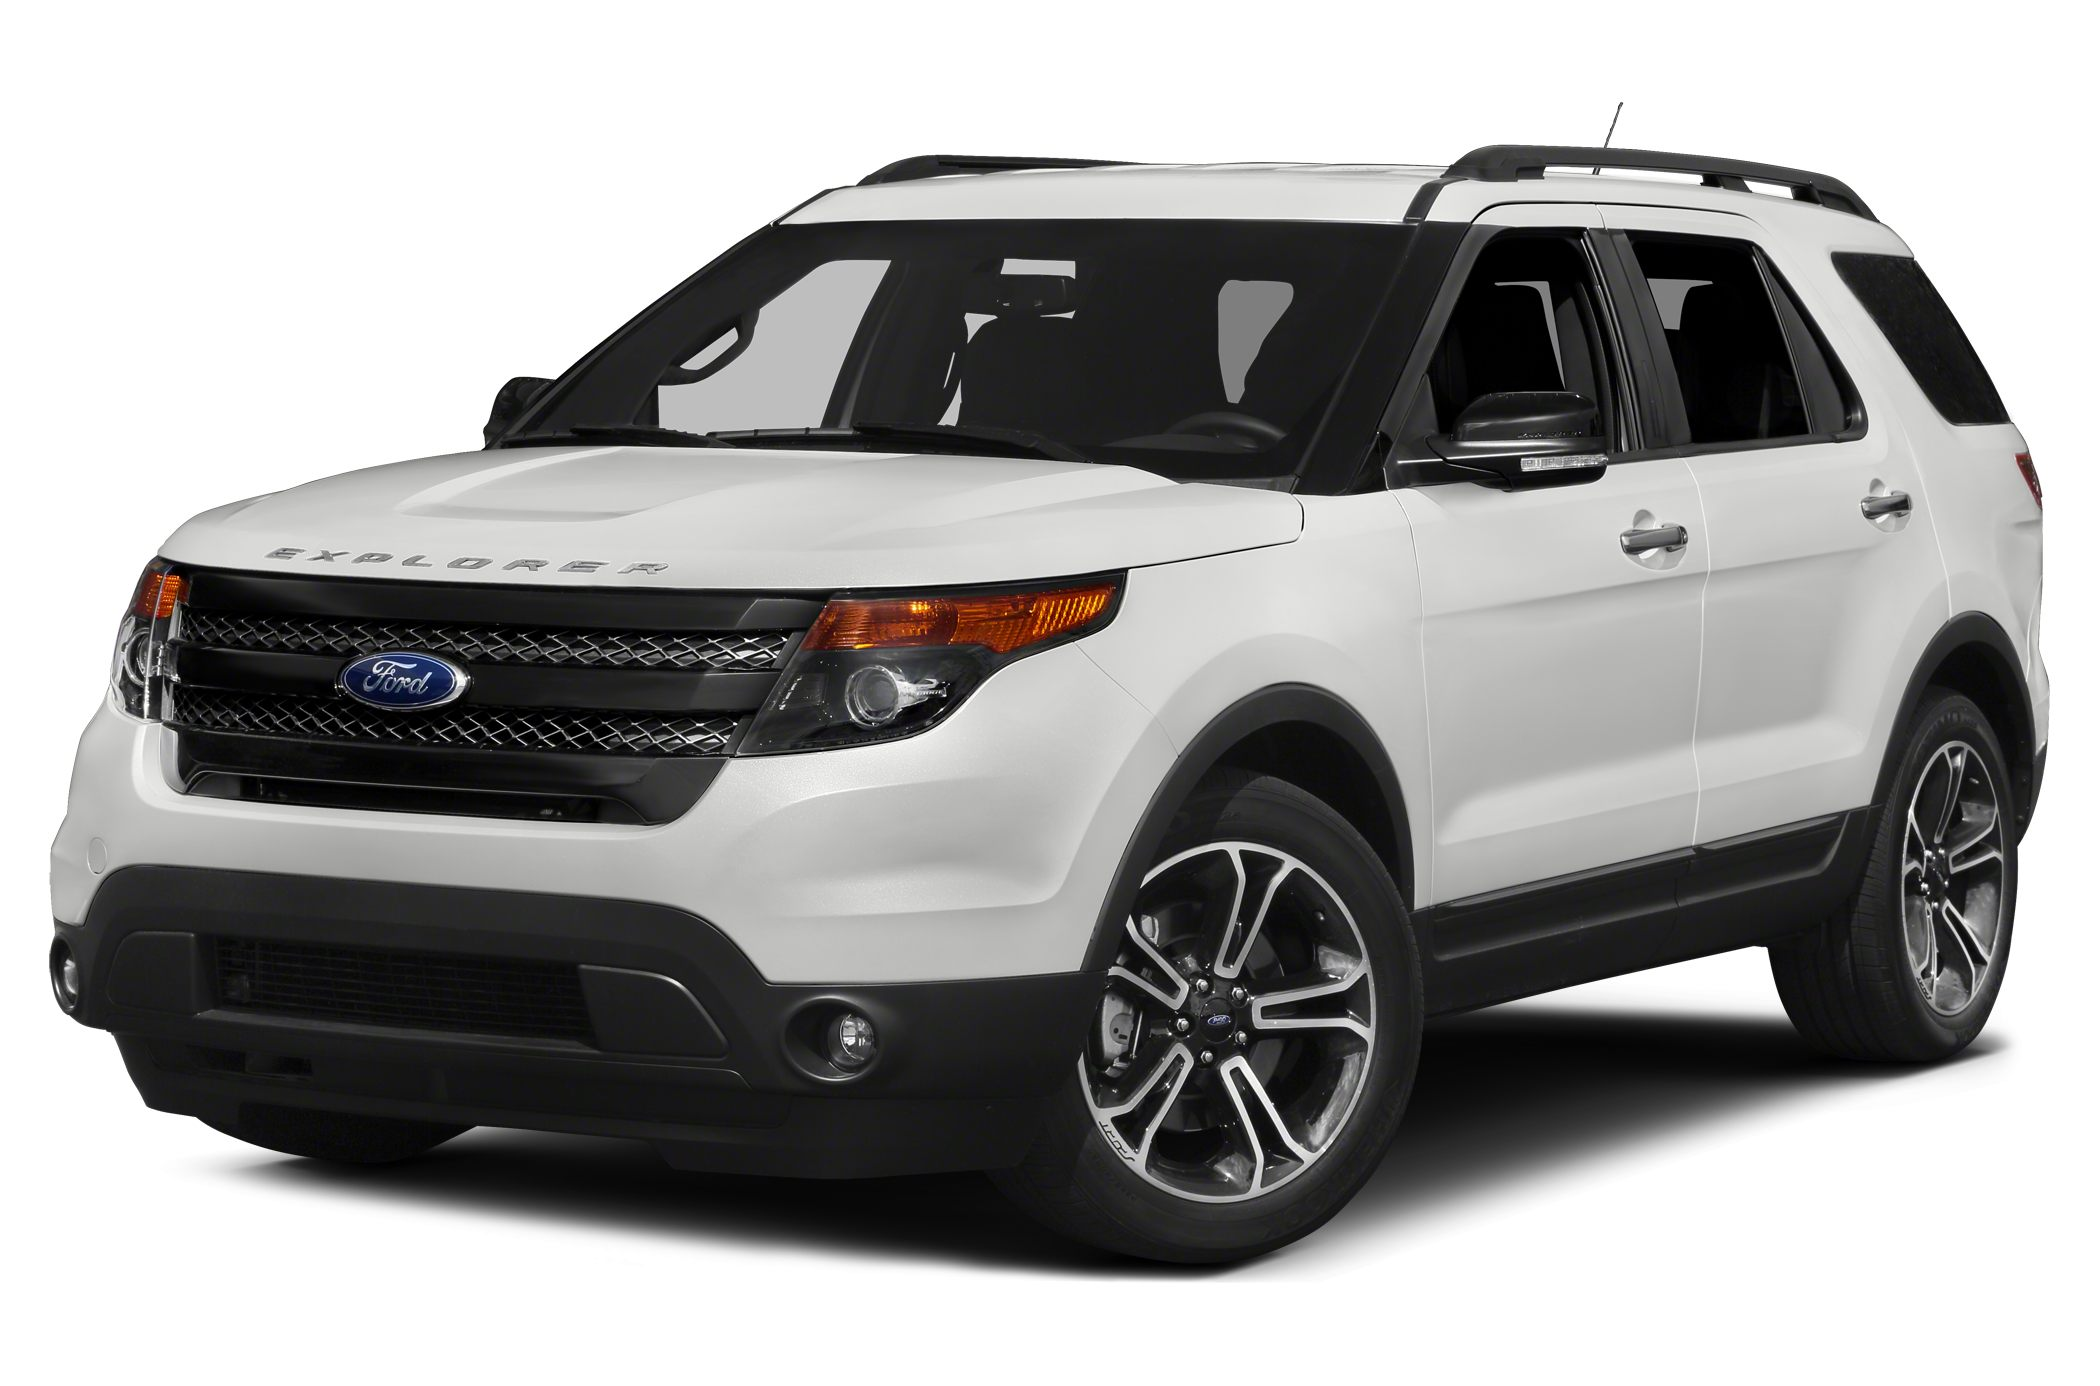 2015 Ford Explorer Sport ONE PRICE STOP NO HASSLE NO HAGGLE CAR BUYING EXPERIENCE Mile